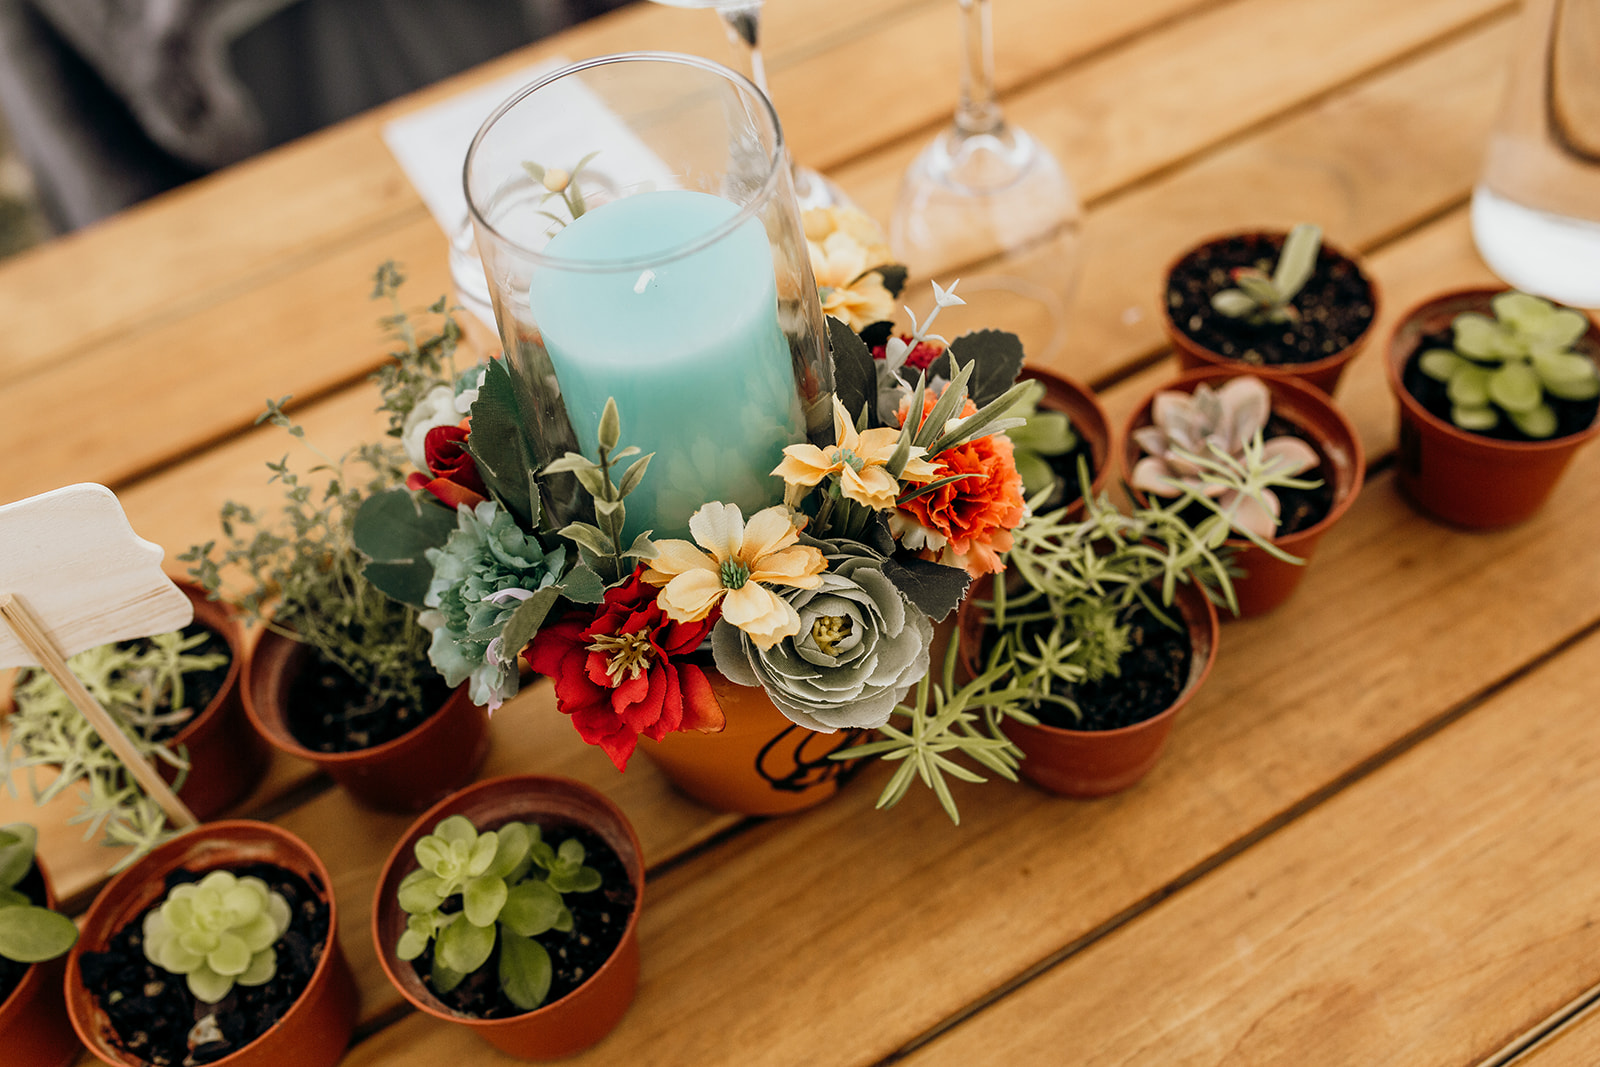 A cluster of succulents surround a terracotta pot with a candle, forming the table centre at a wedding.